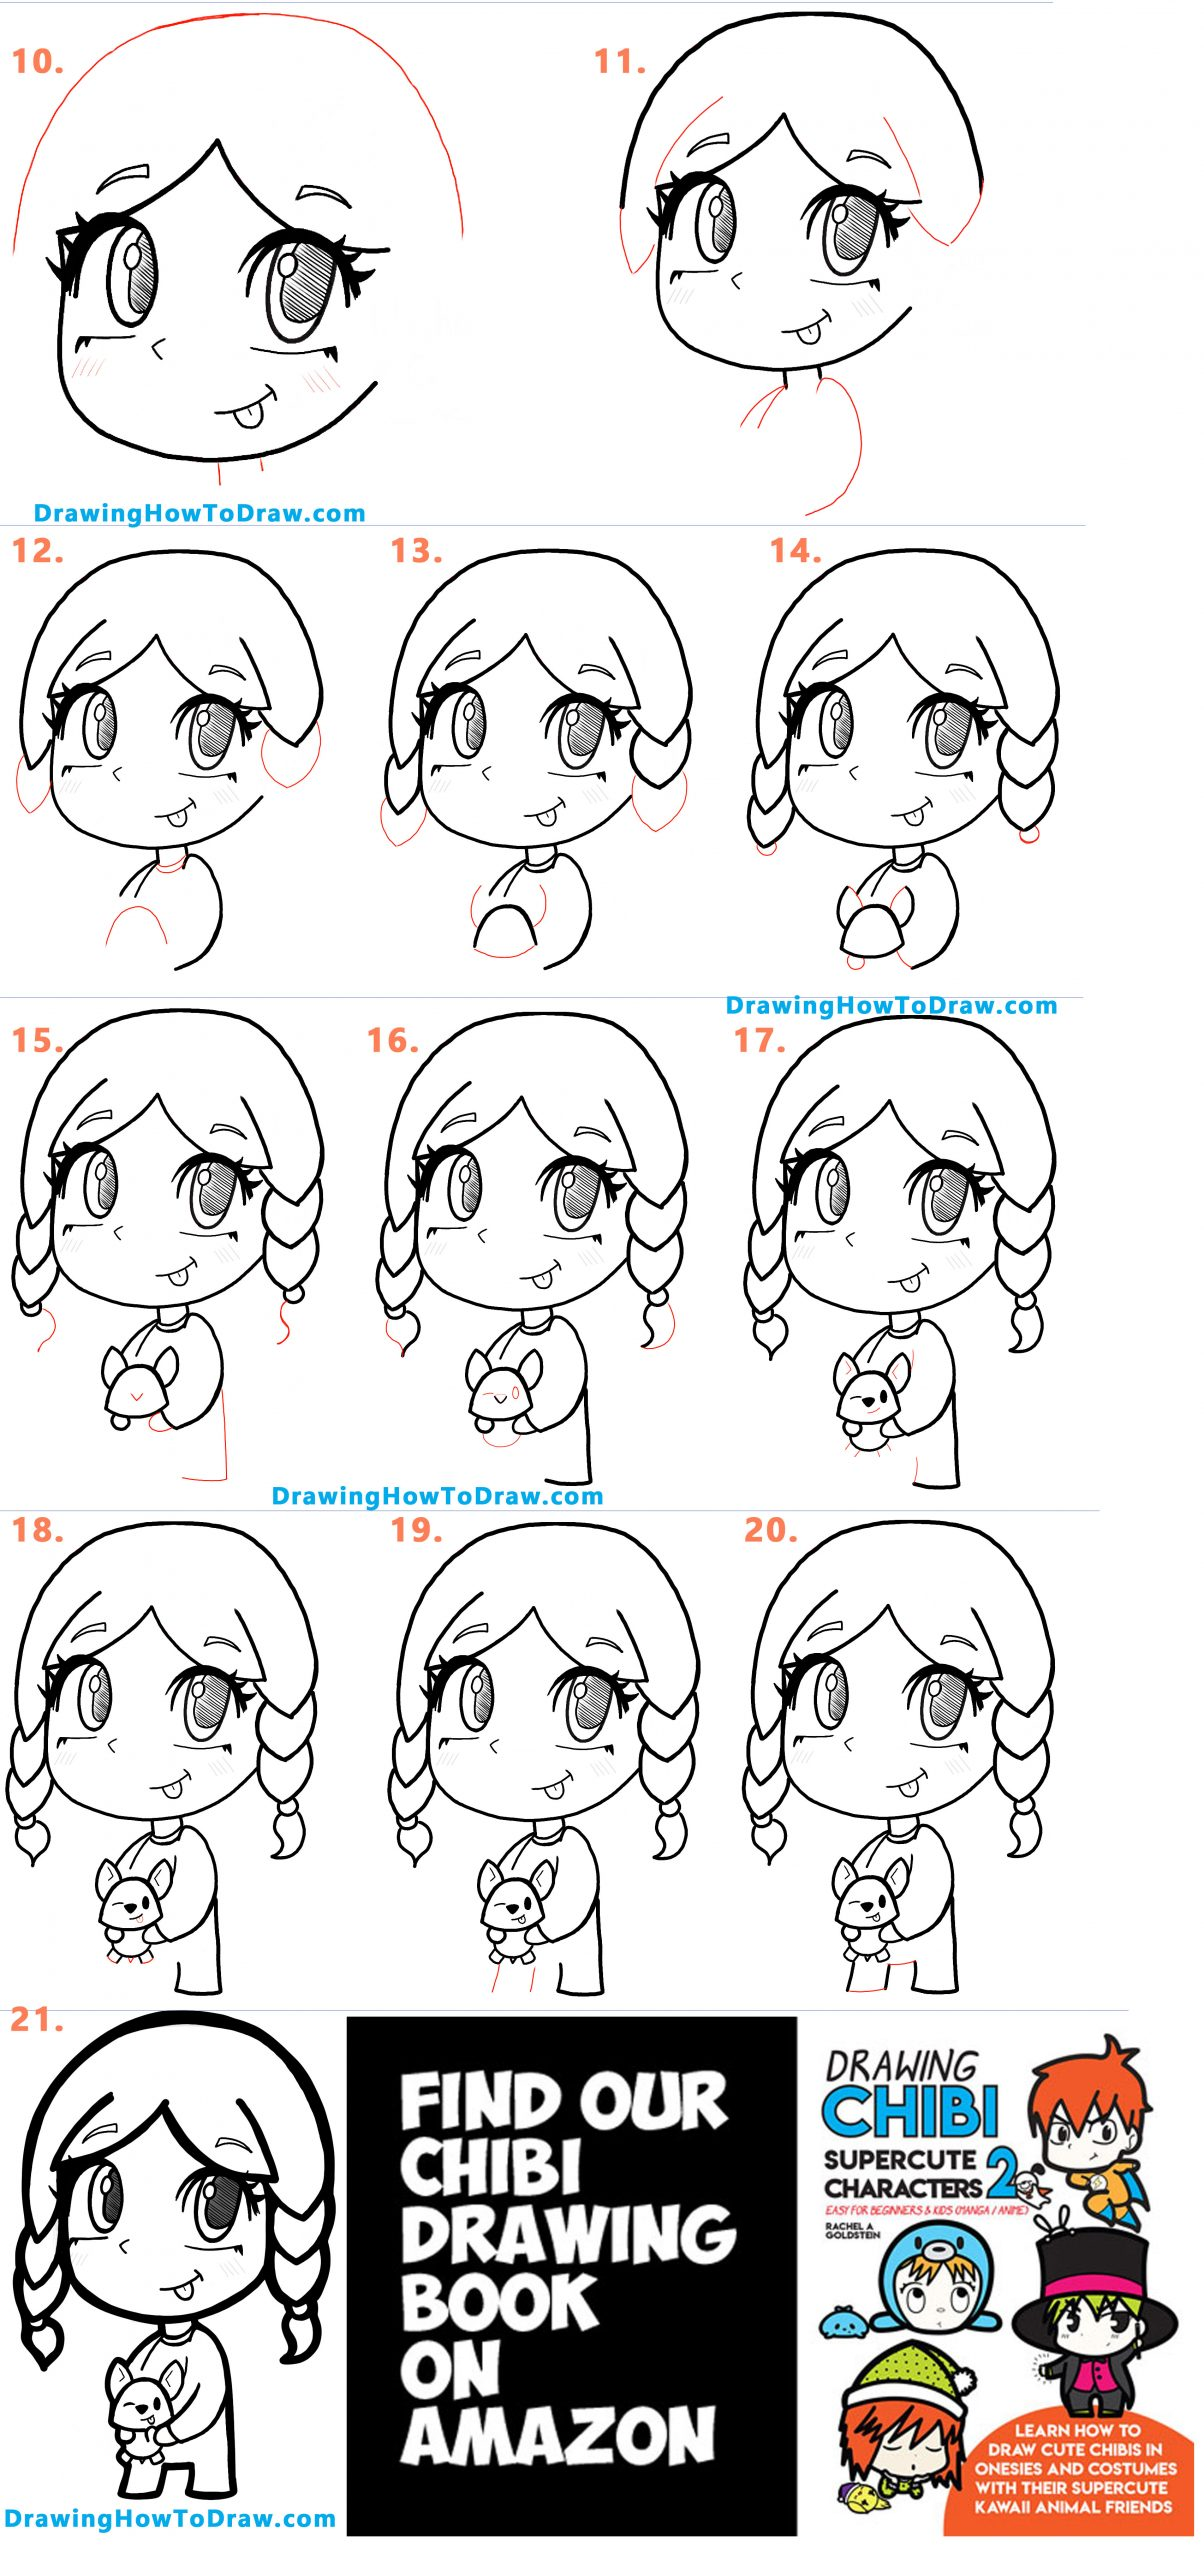 Learn How to Draw Anime / Manga / Chibi Girl with her Corgi Puppy Easy Step by Step Drawing Tutorial